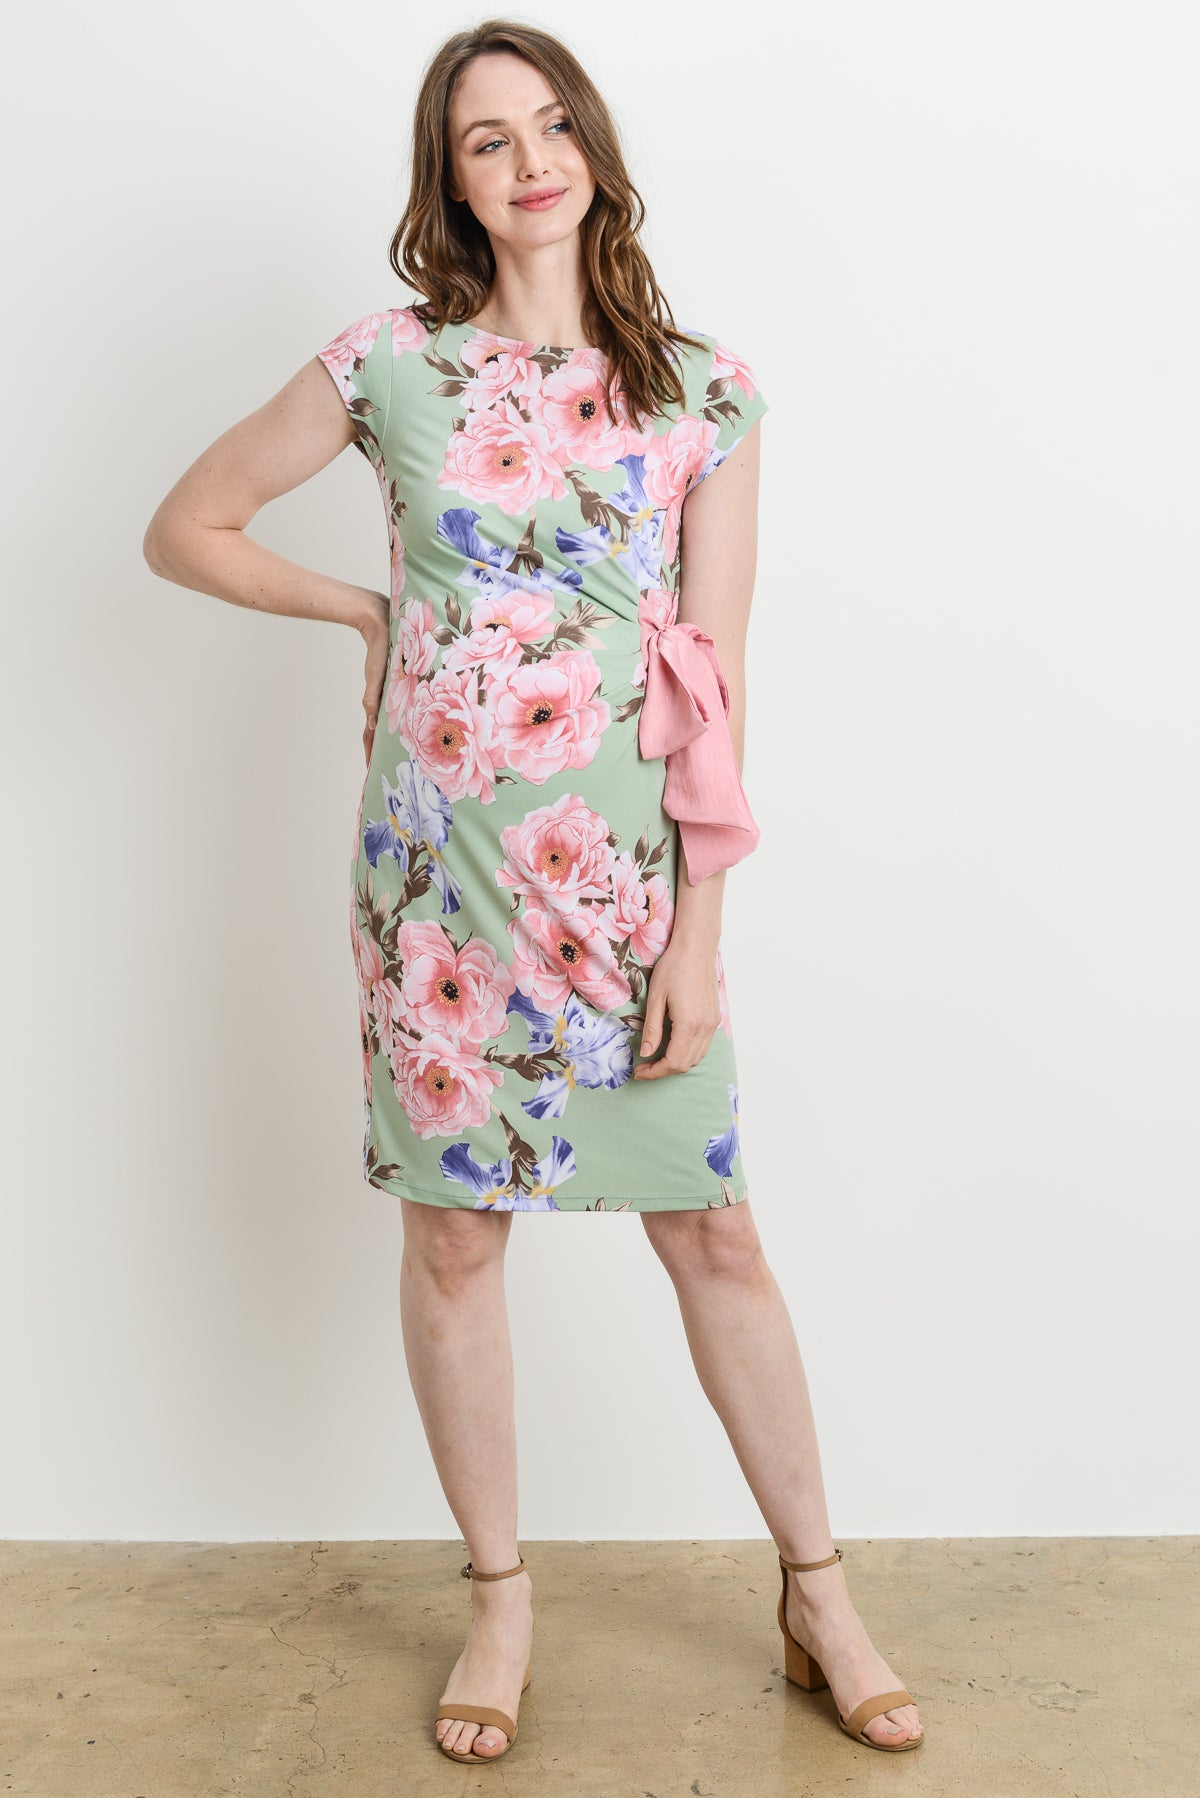 f4912c4c701e0 Pastel Floral Boat Neck with Ribbon Maternity Dress ...